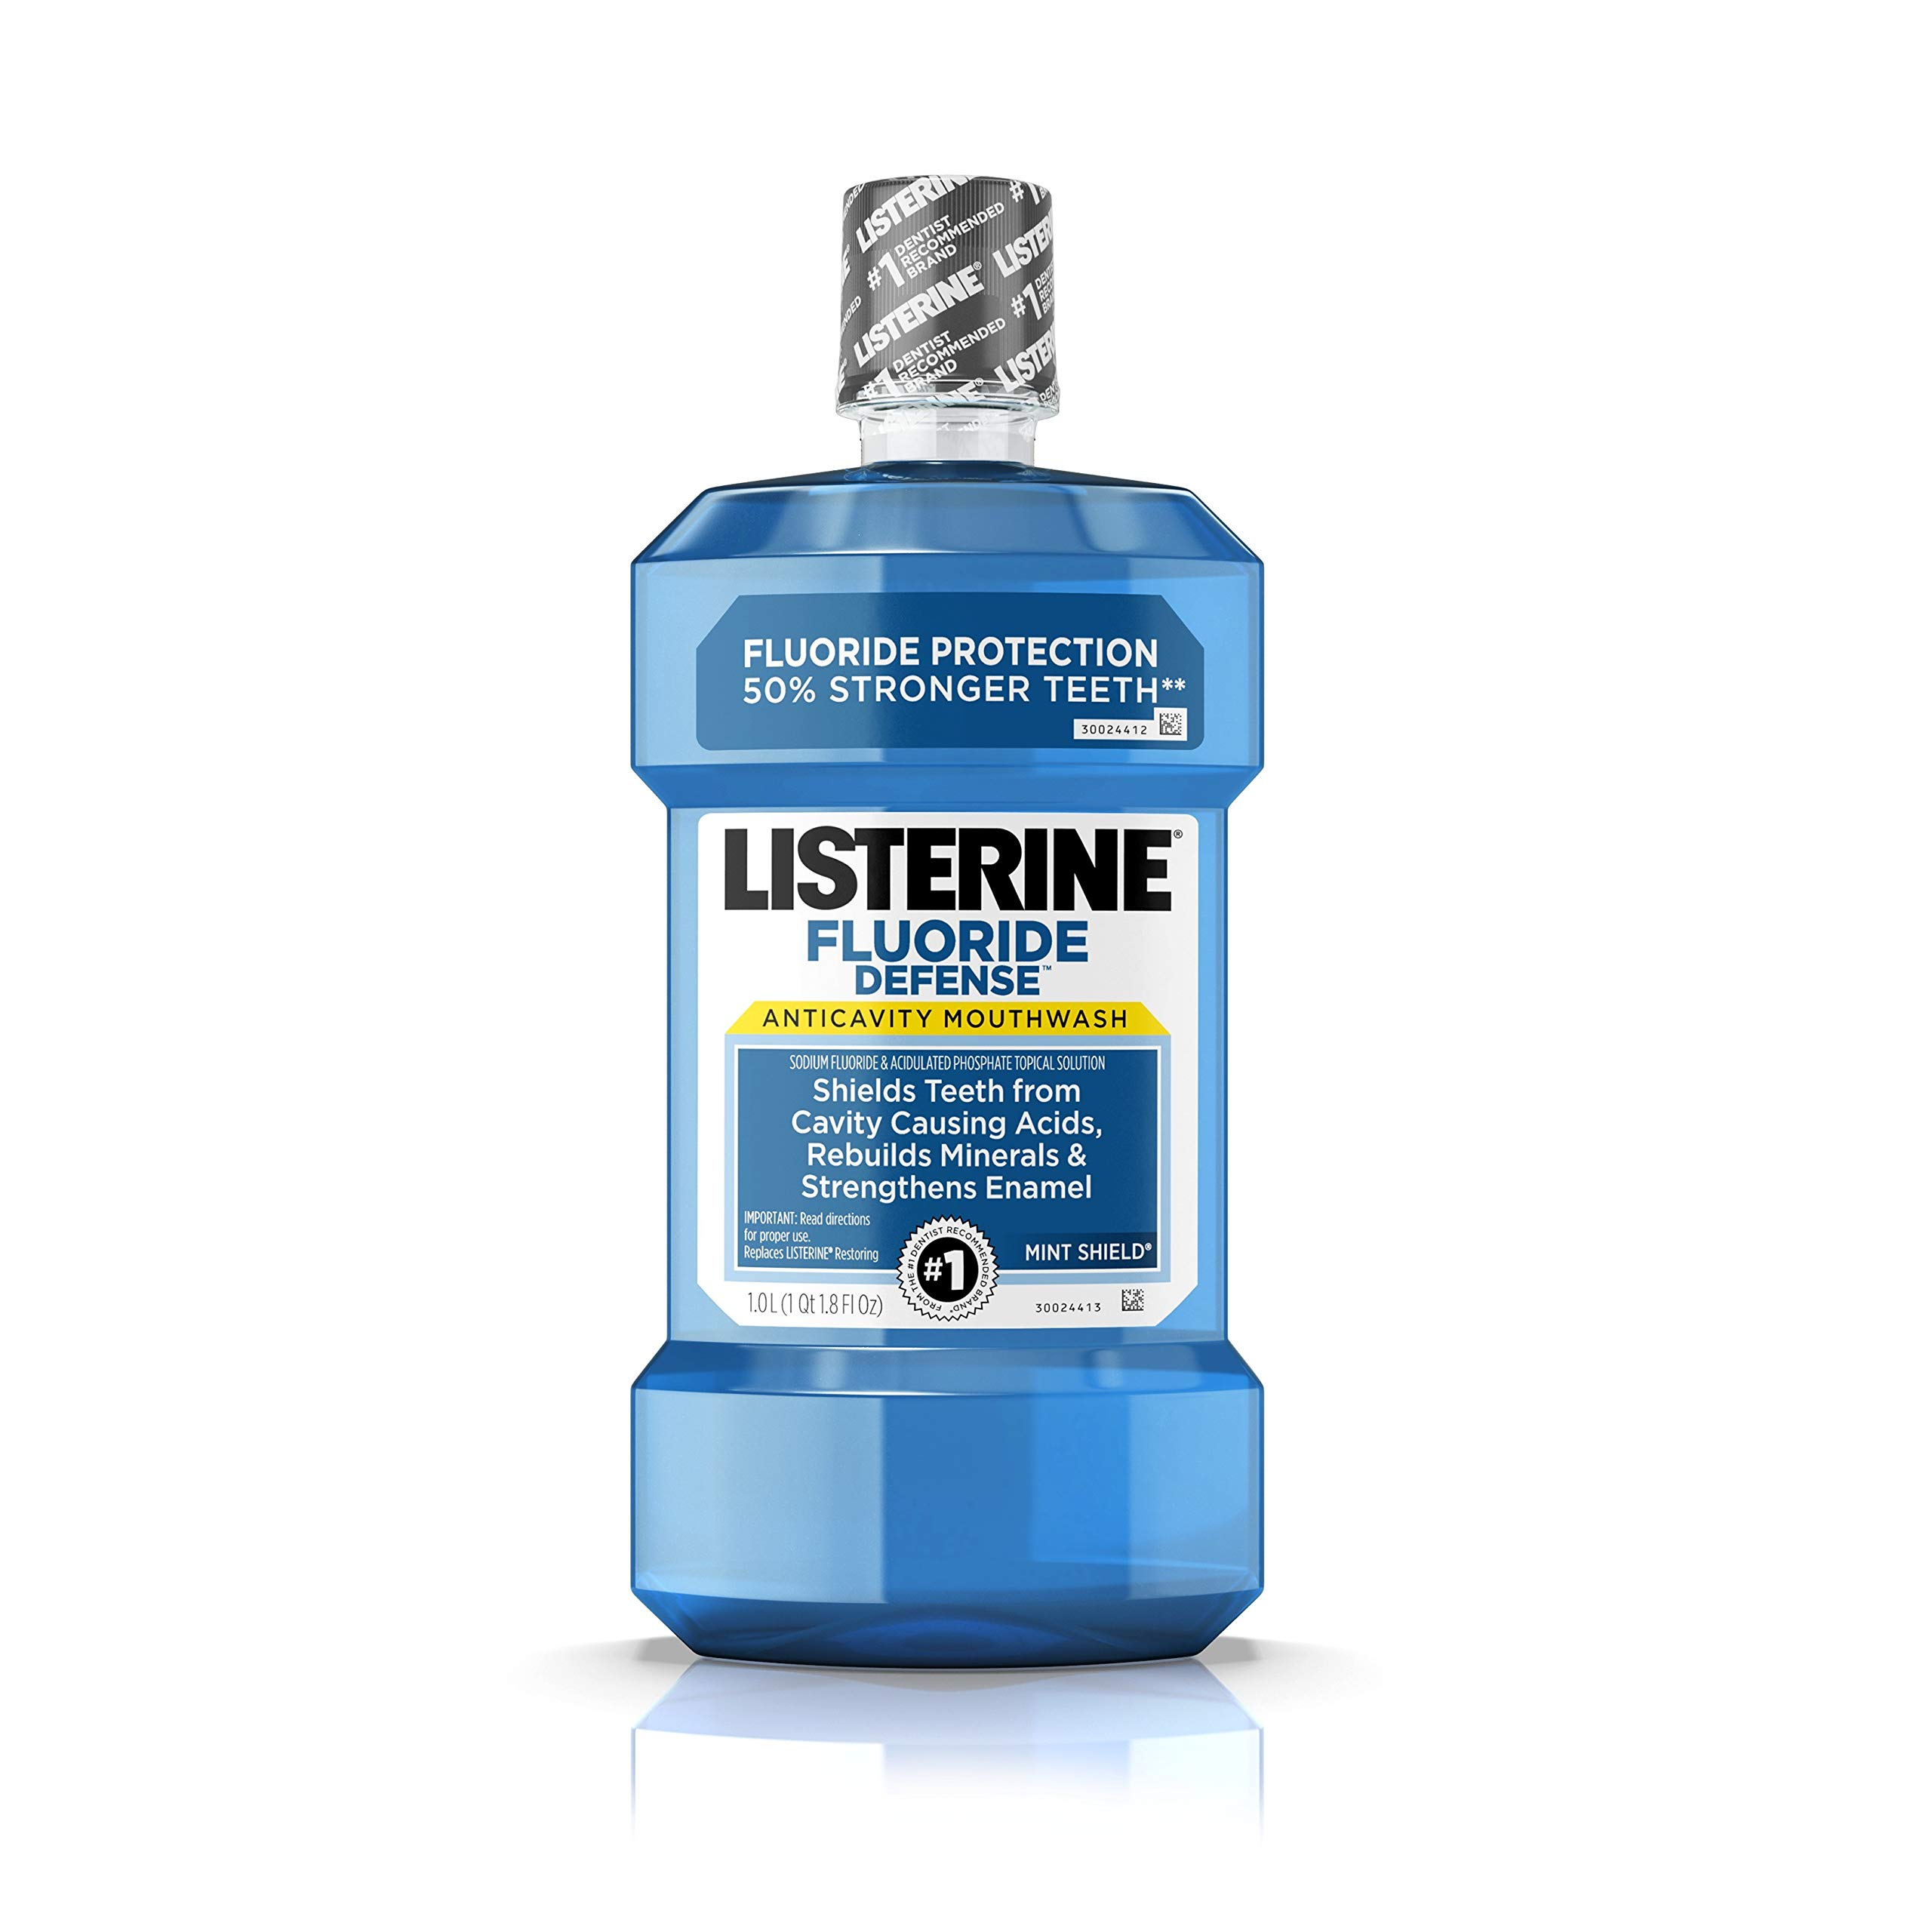 Listerine Fluoride Defense Anticavity Mouthwash, Mouth Rinse For Bad Breath, Cavity Prevention and Enamel Strengthening, Mint Flavored Oral Care, 1 L (Pack of 6)